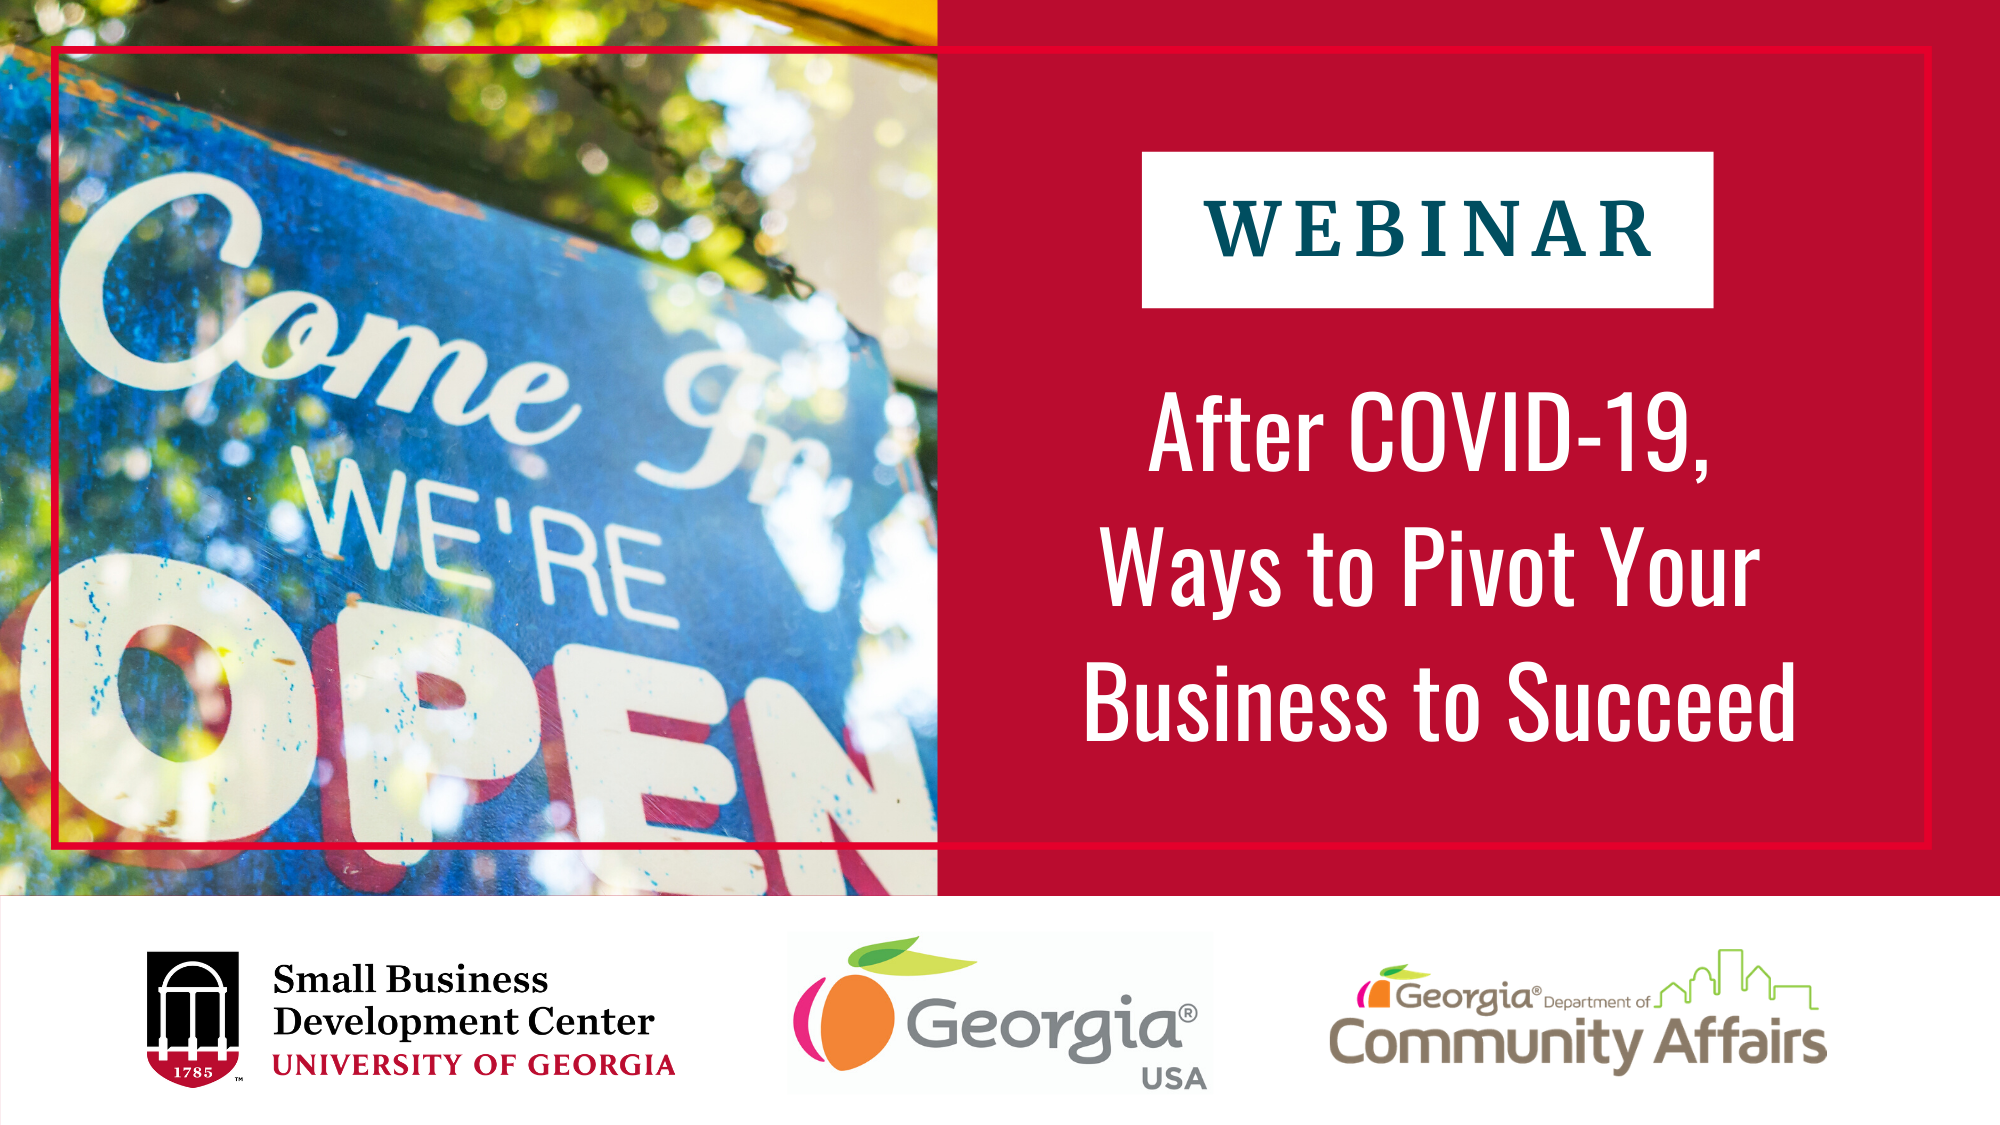 After COVID-19, Ways to Pivot Your Business to Succeed- Region 8